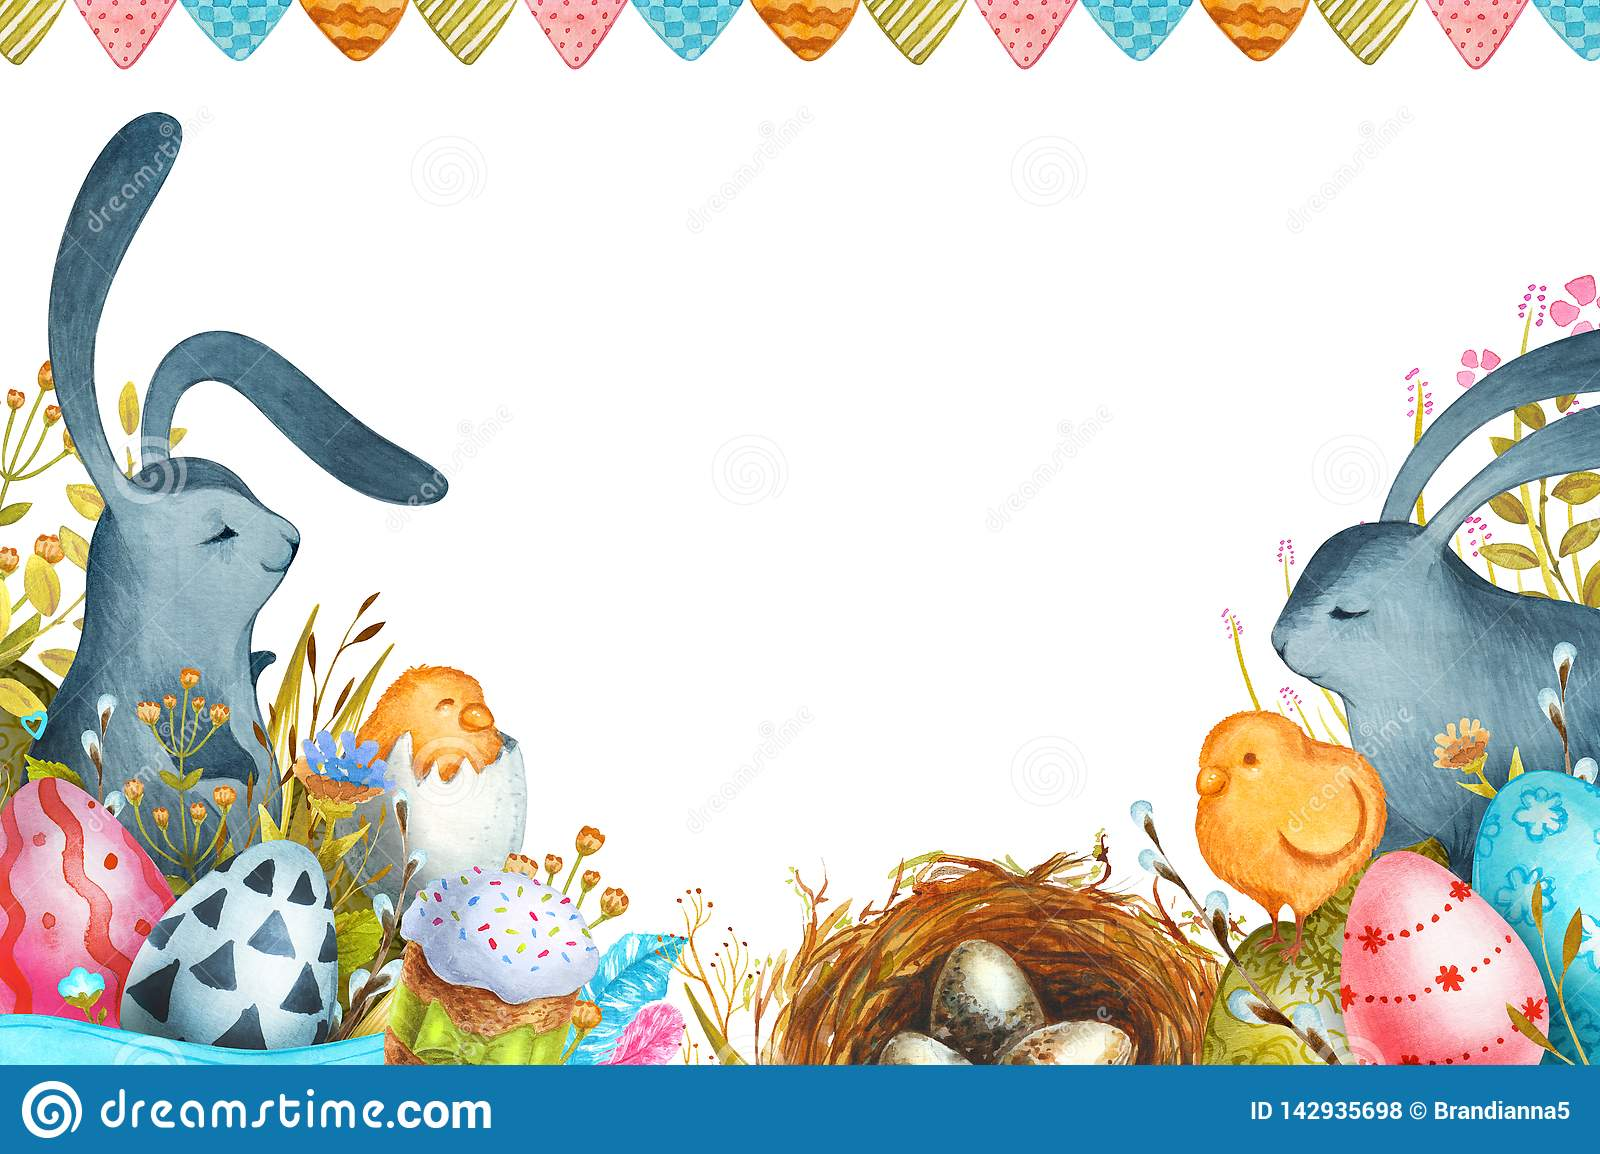 Watercolor illustration Happy Easter. Easter bunnies and Easter eggs.